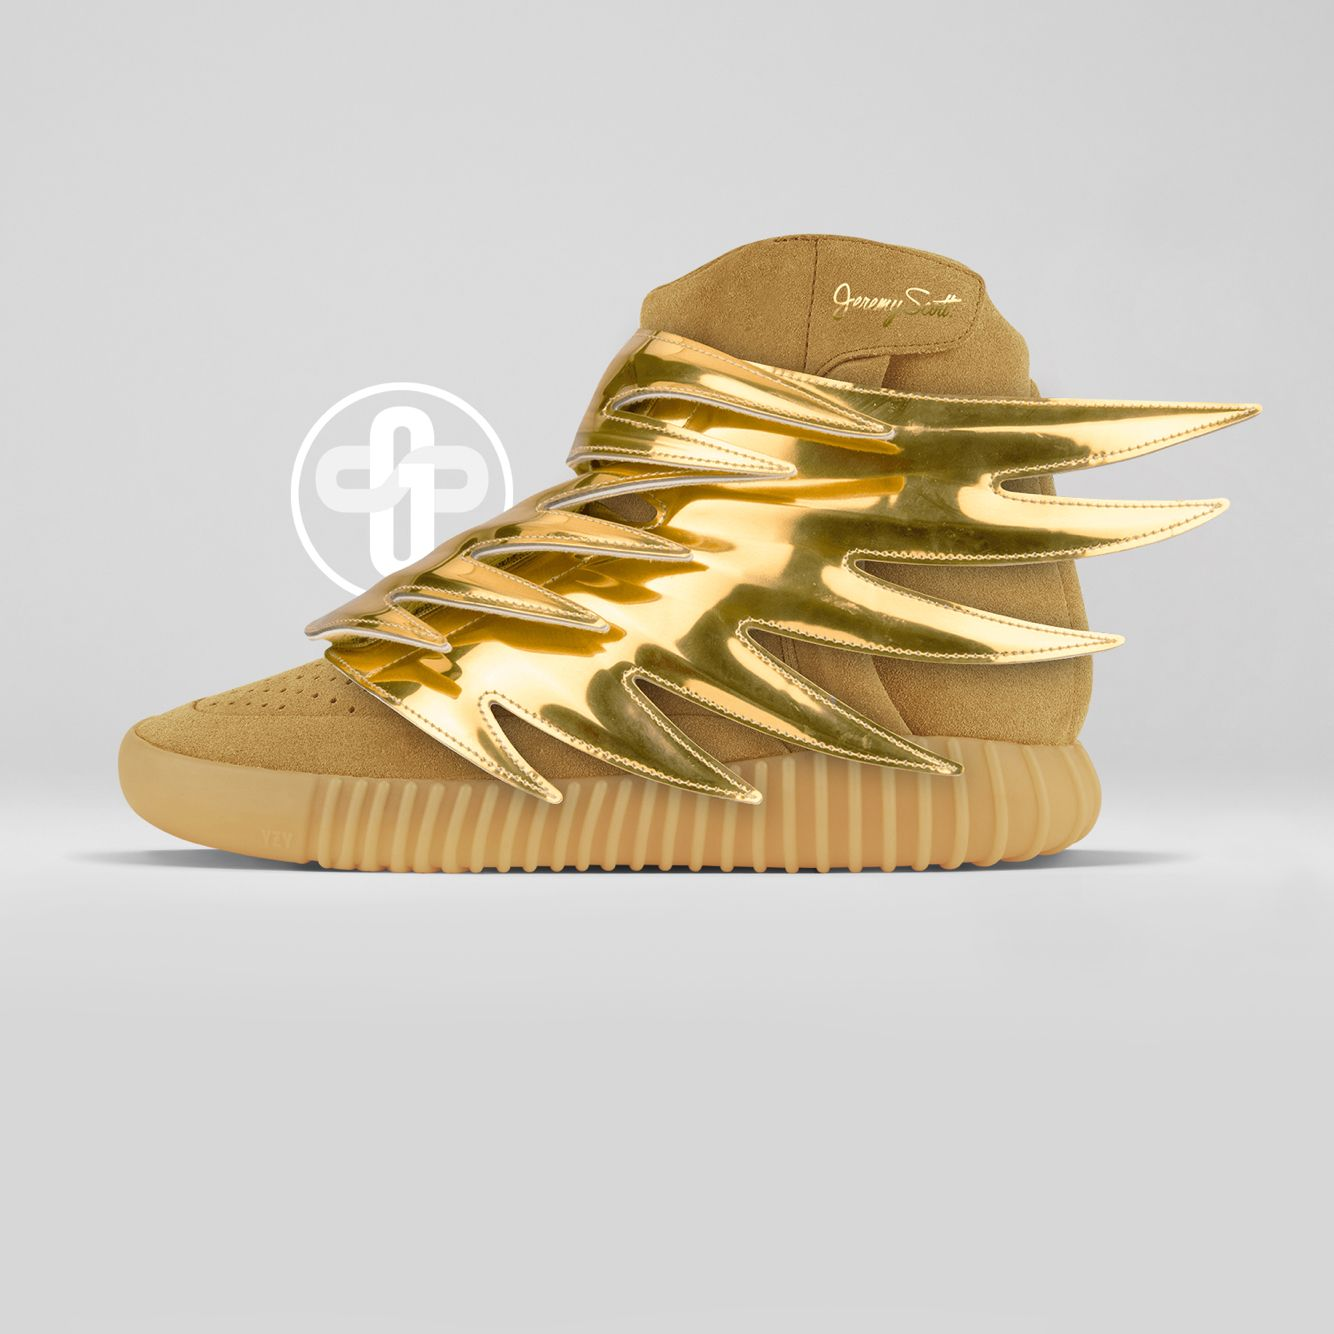 4cb5fe540aad Jeremy Scott x Adidas Yeezy Boost 750 Gold Wings